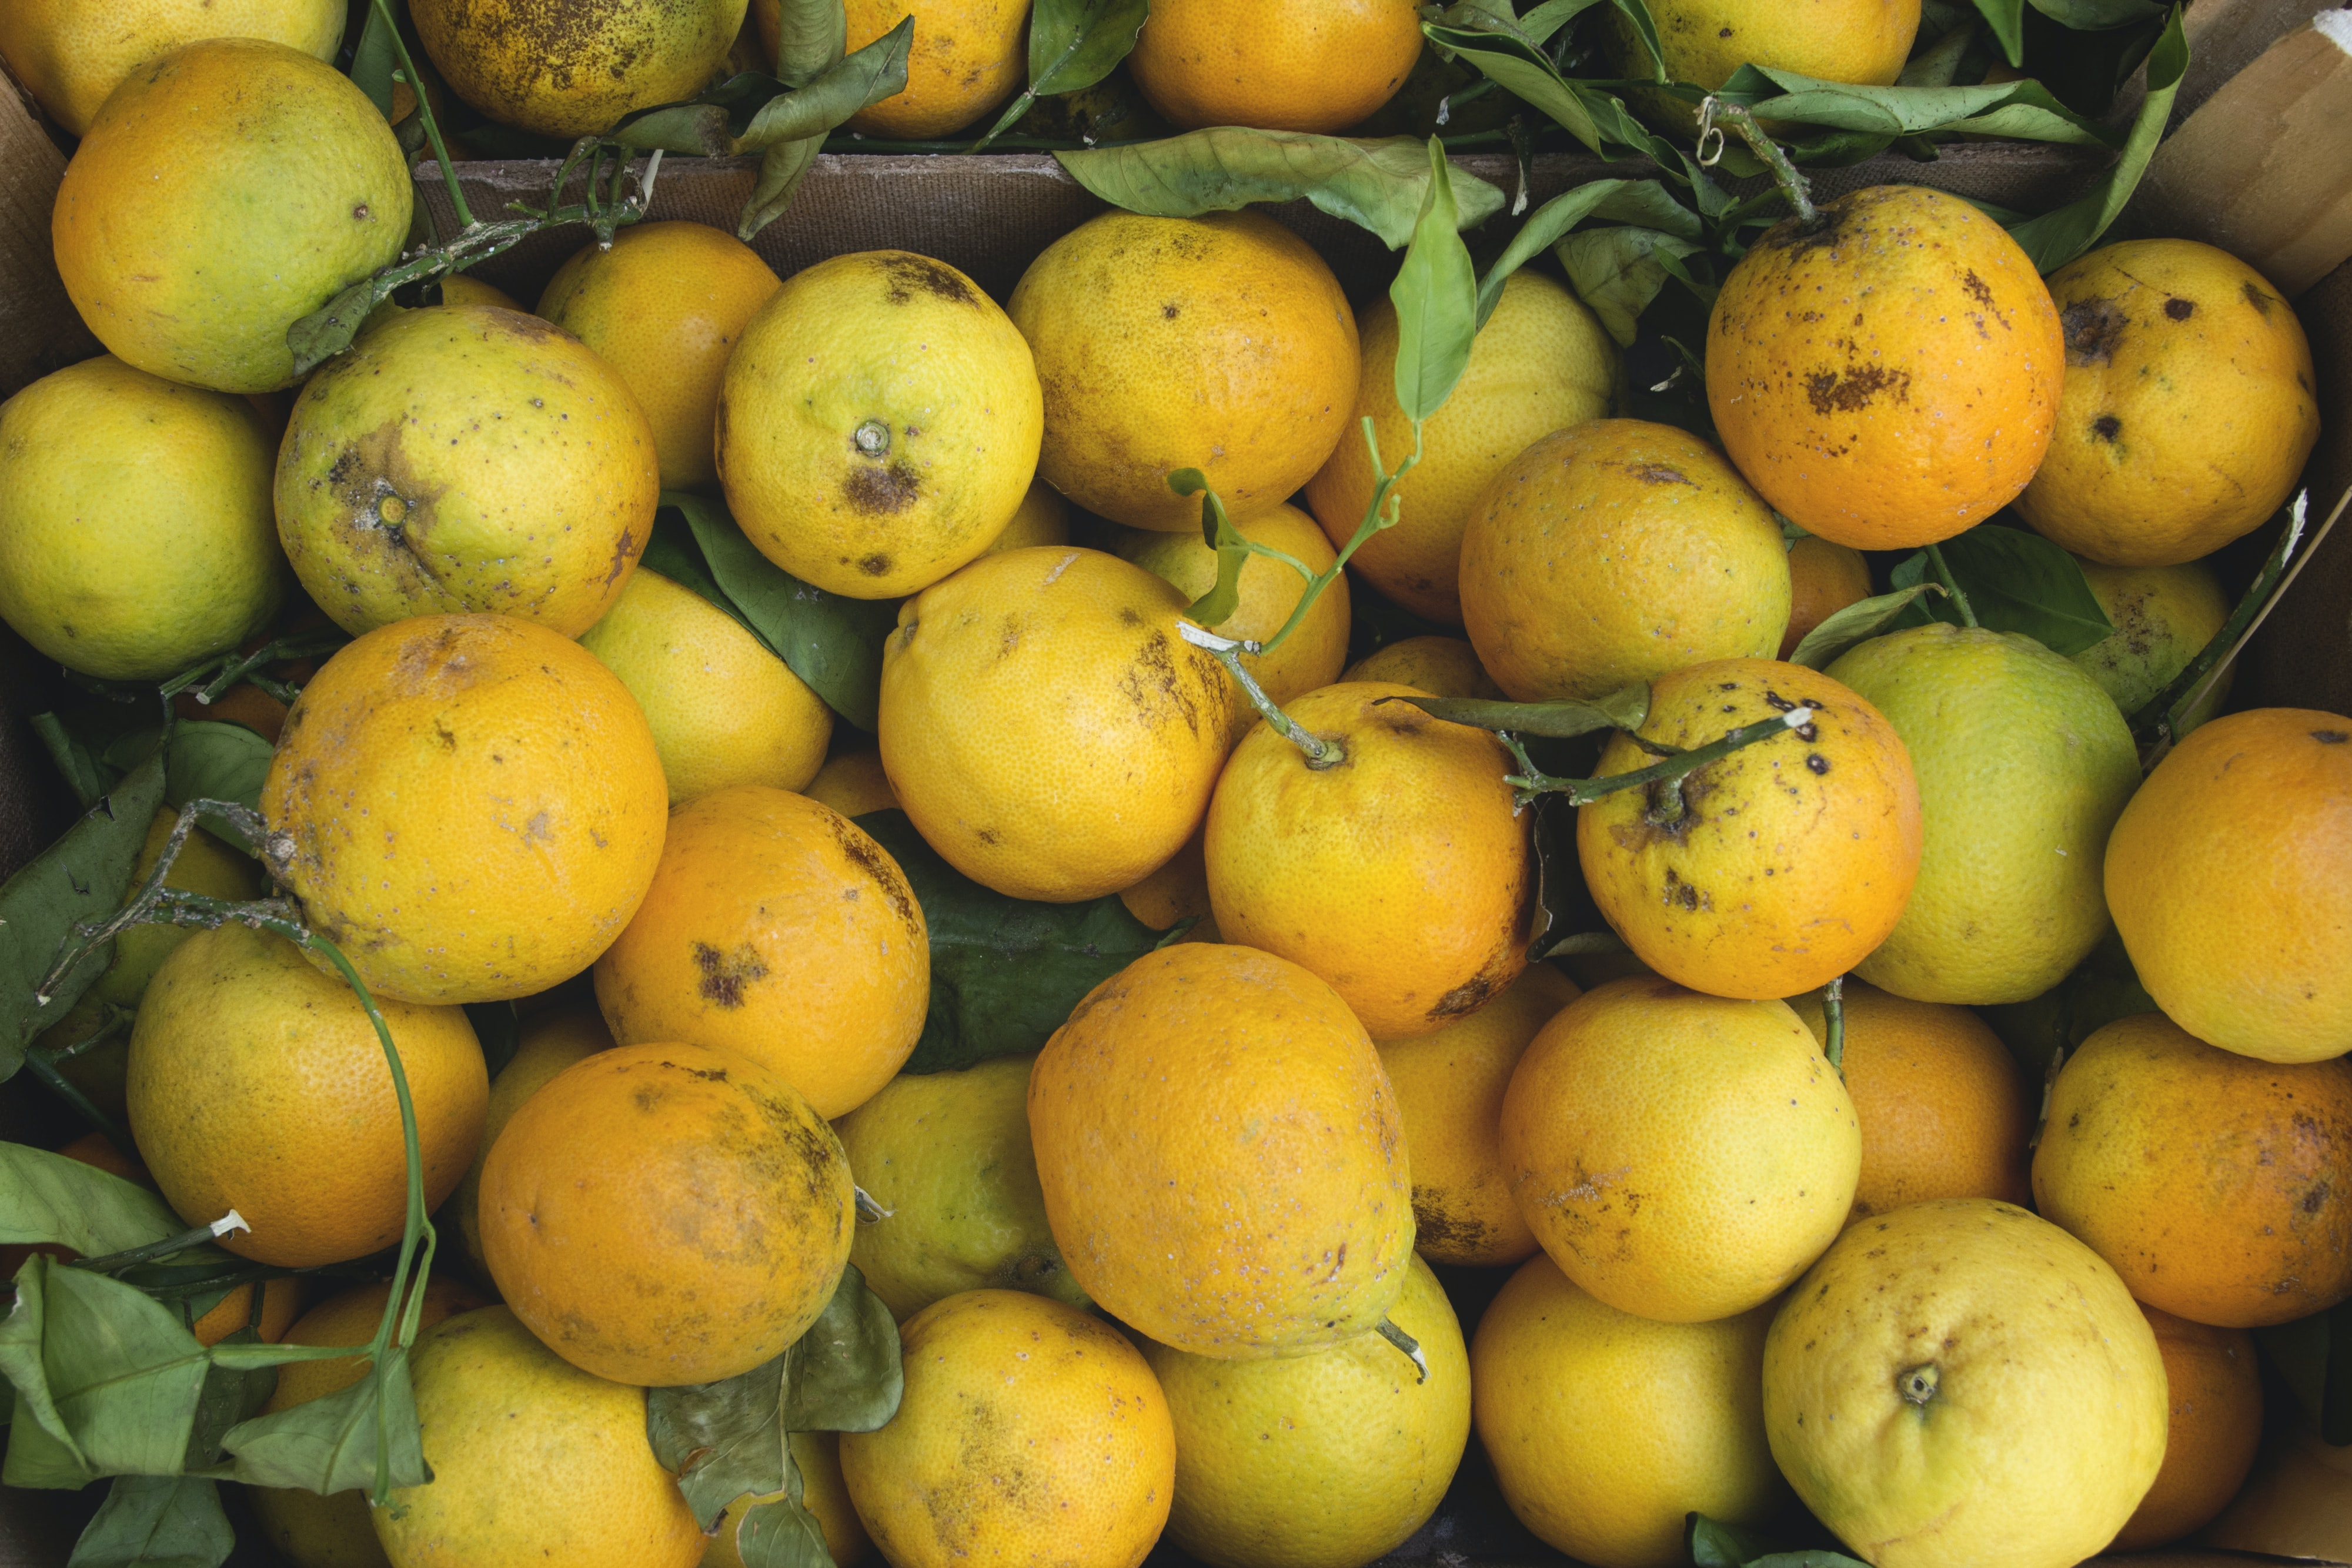 bunch of yellow fruits